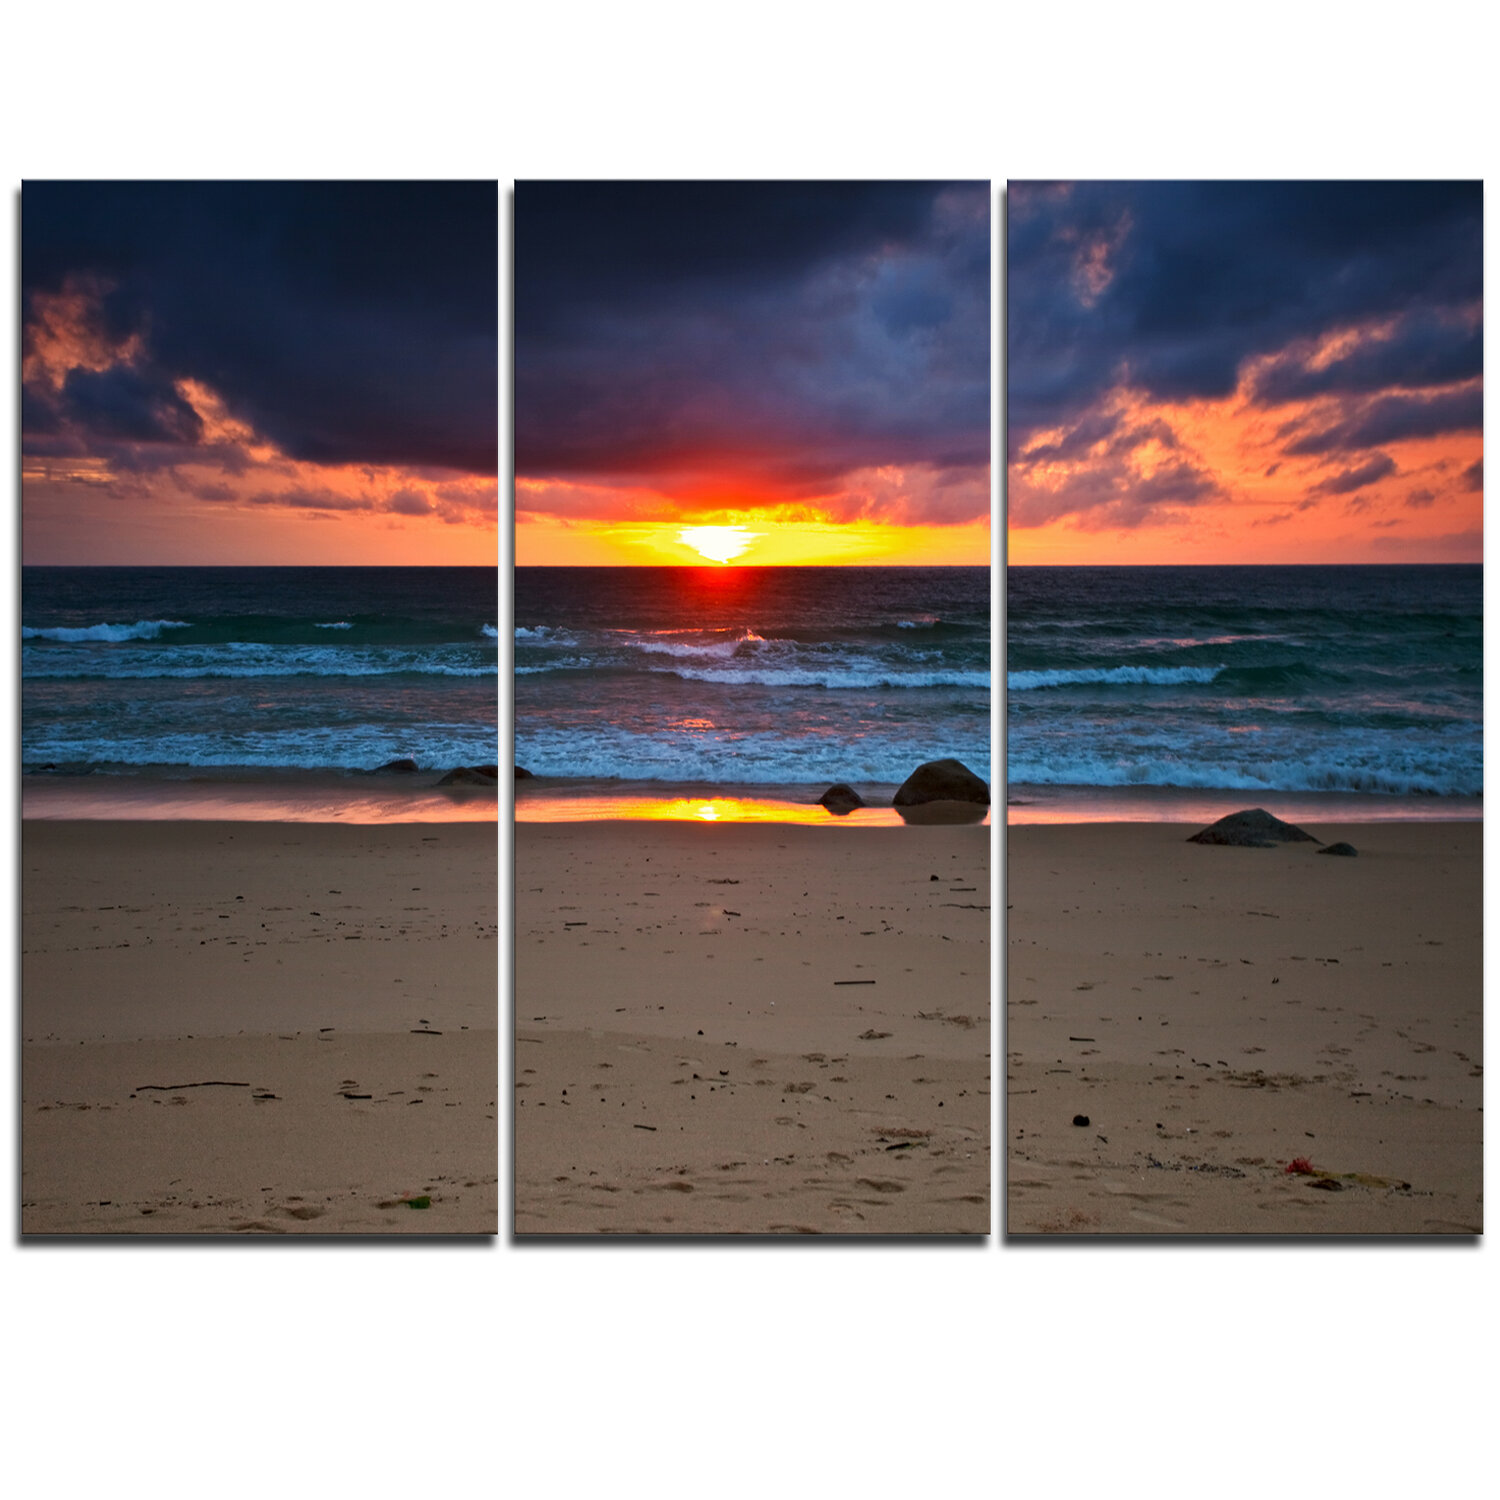 Designart Dramatic Colorful Sky Over Beach 3 Piece Graphic Art On Wrapped Canvas Set Wayfair